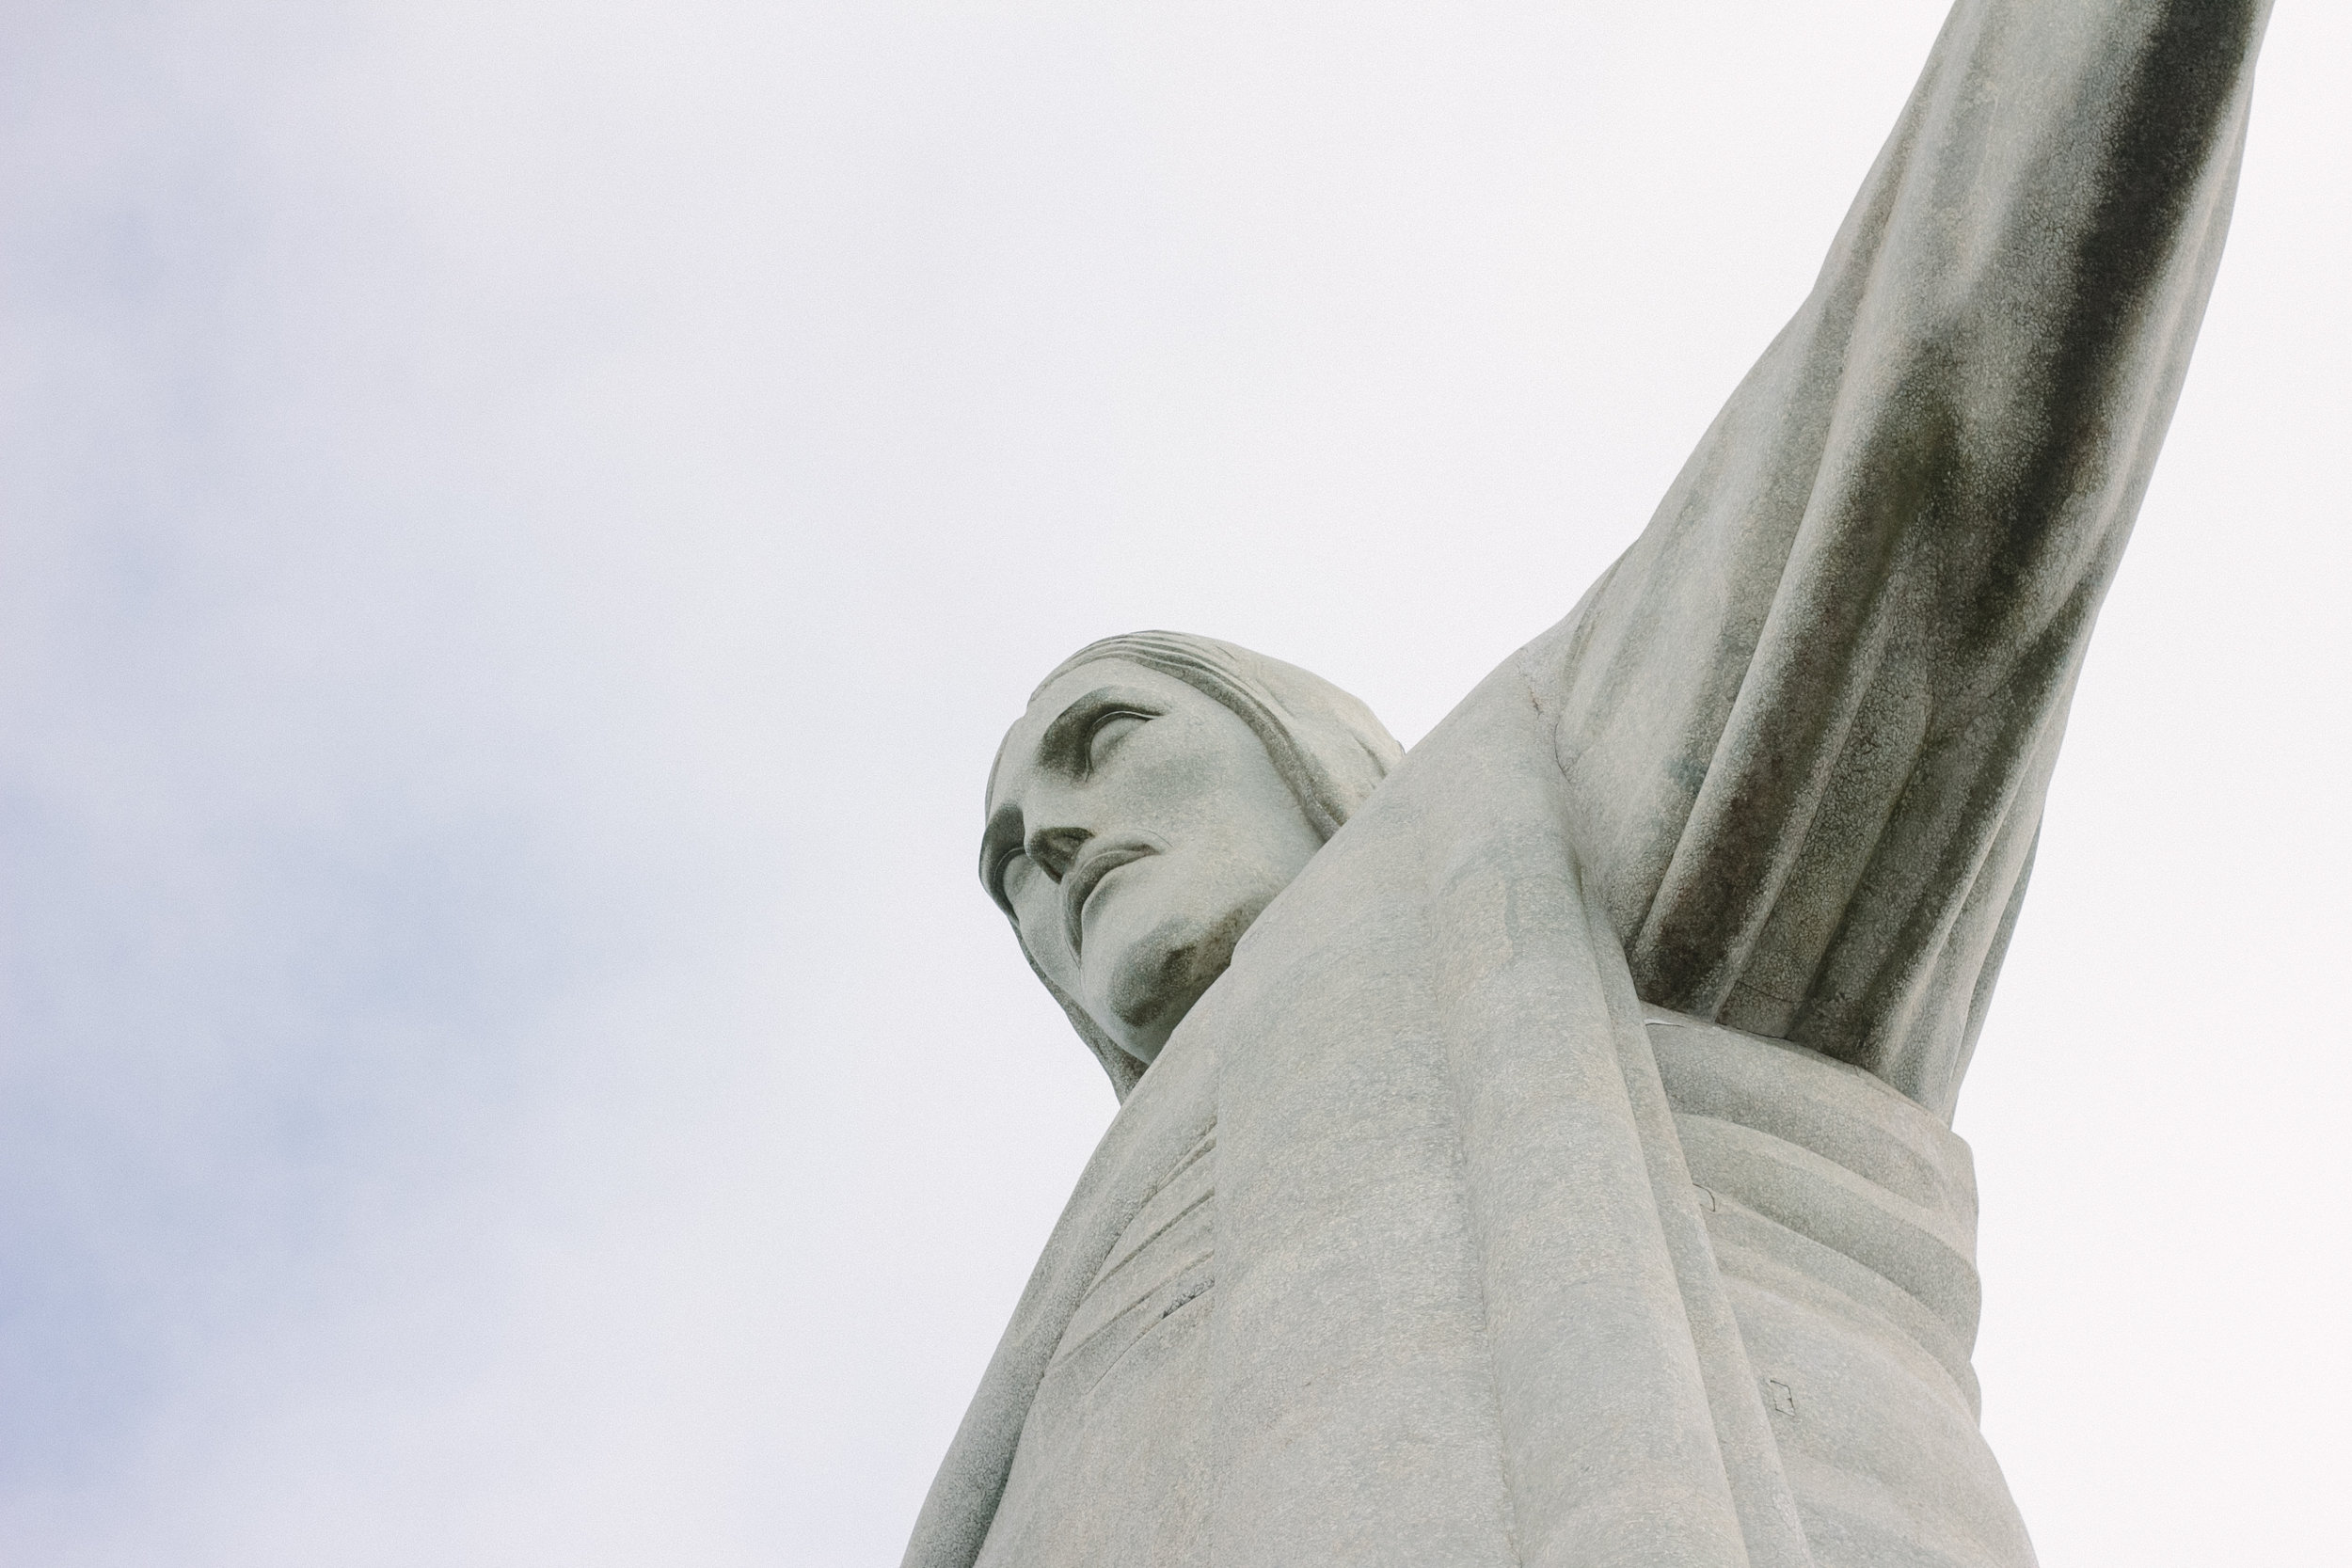 Christ Redeemer | An eco-friendly guide to Rio de Janeiro, Brazil | Eco-friendly travel by The Foraged Life